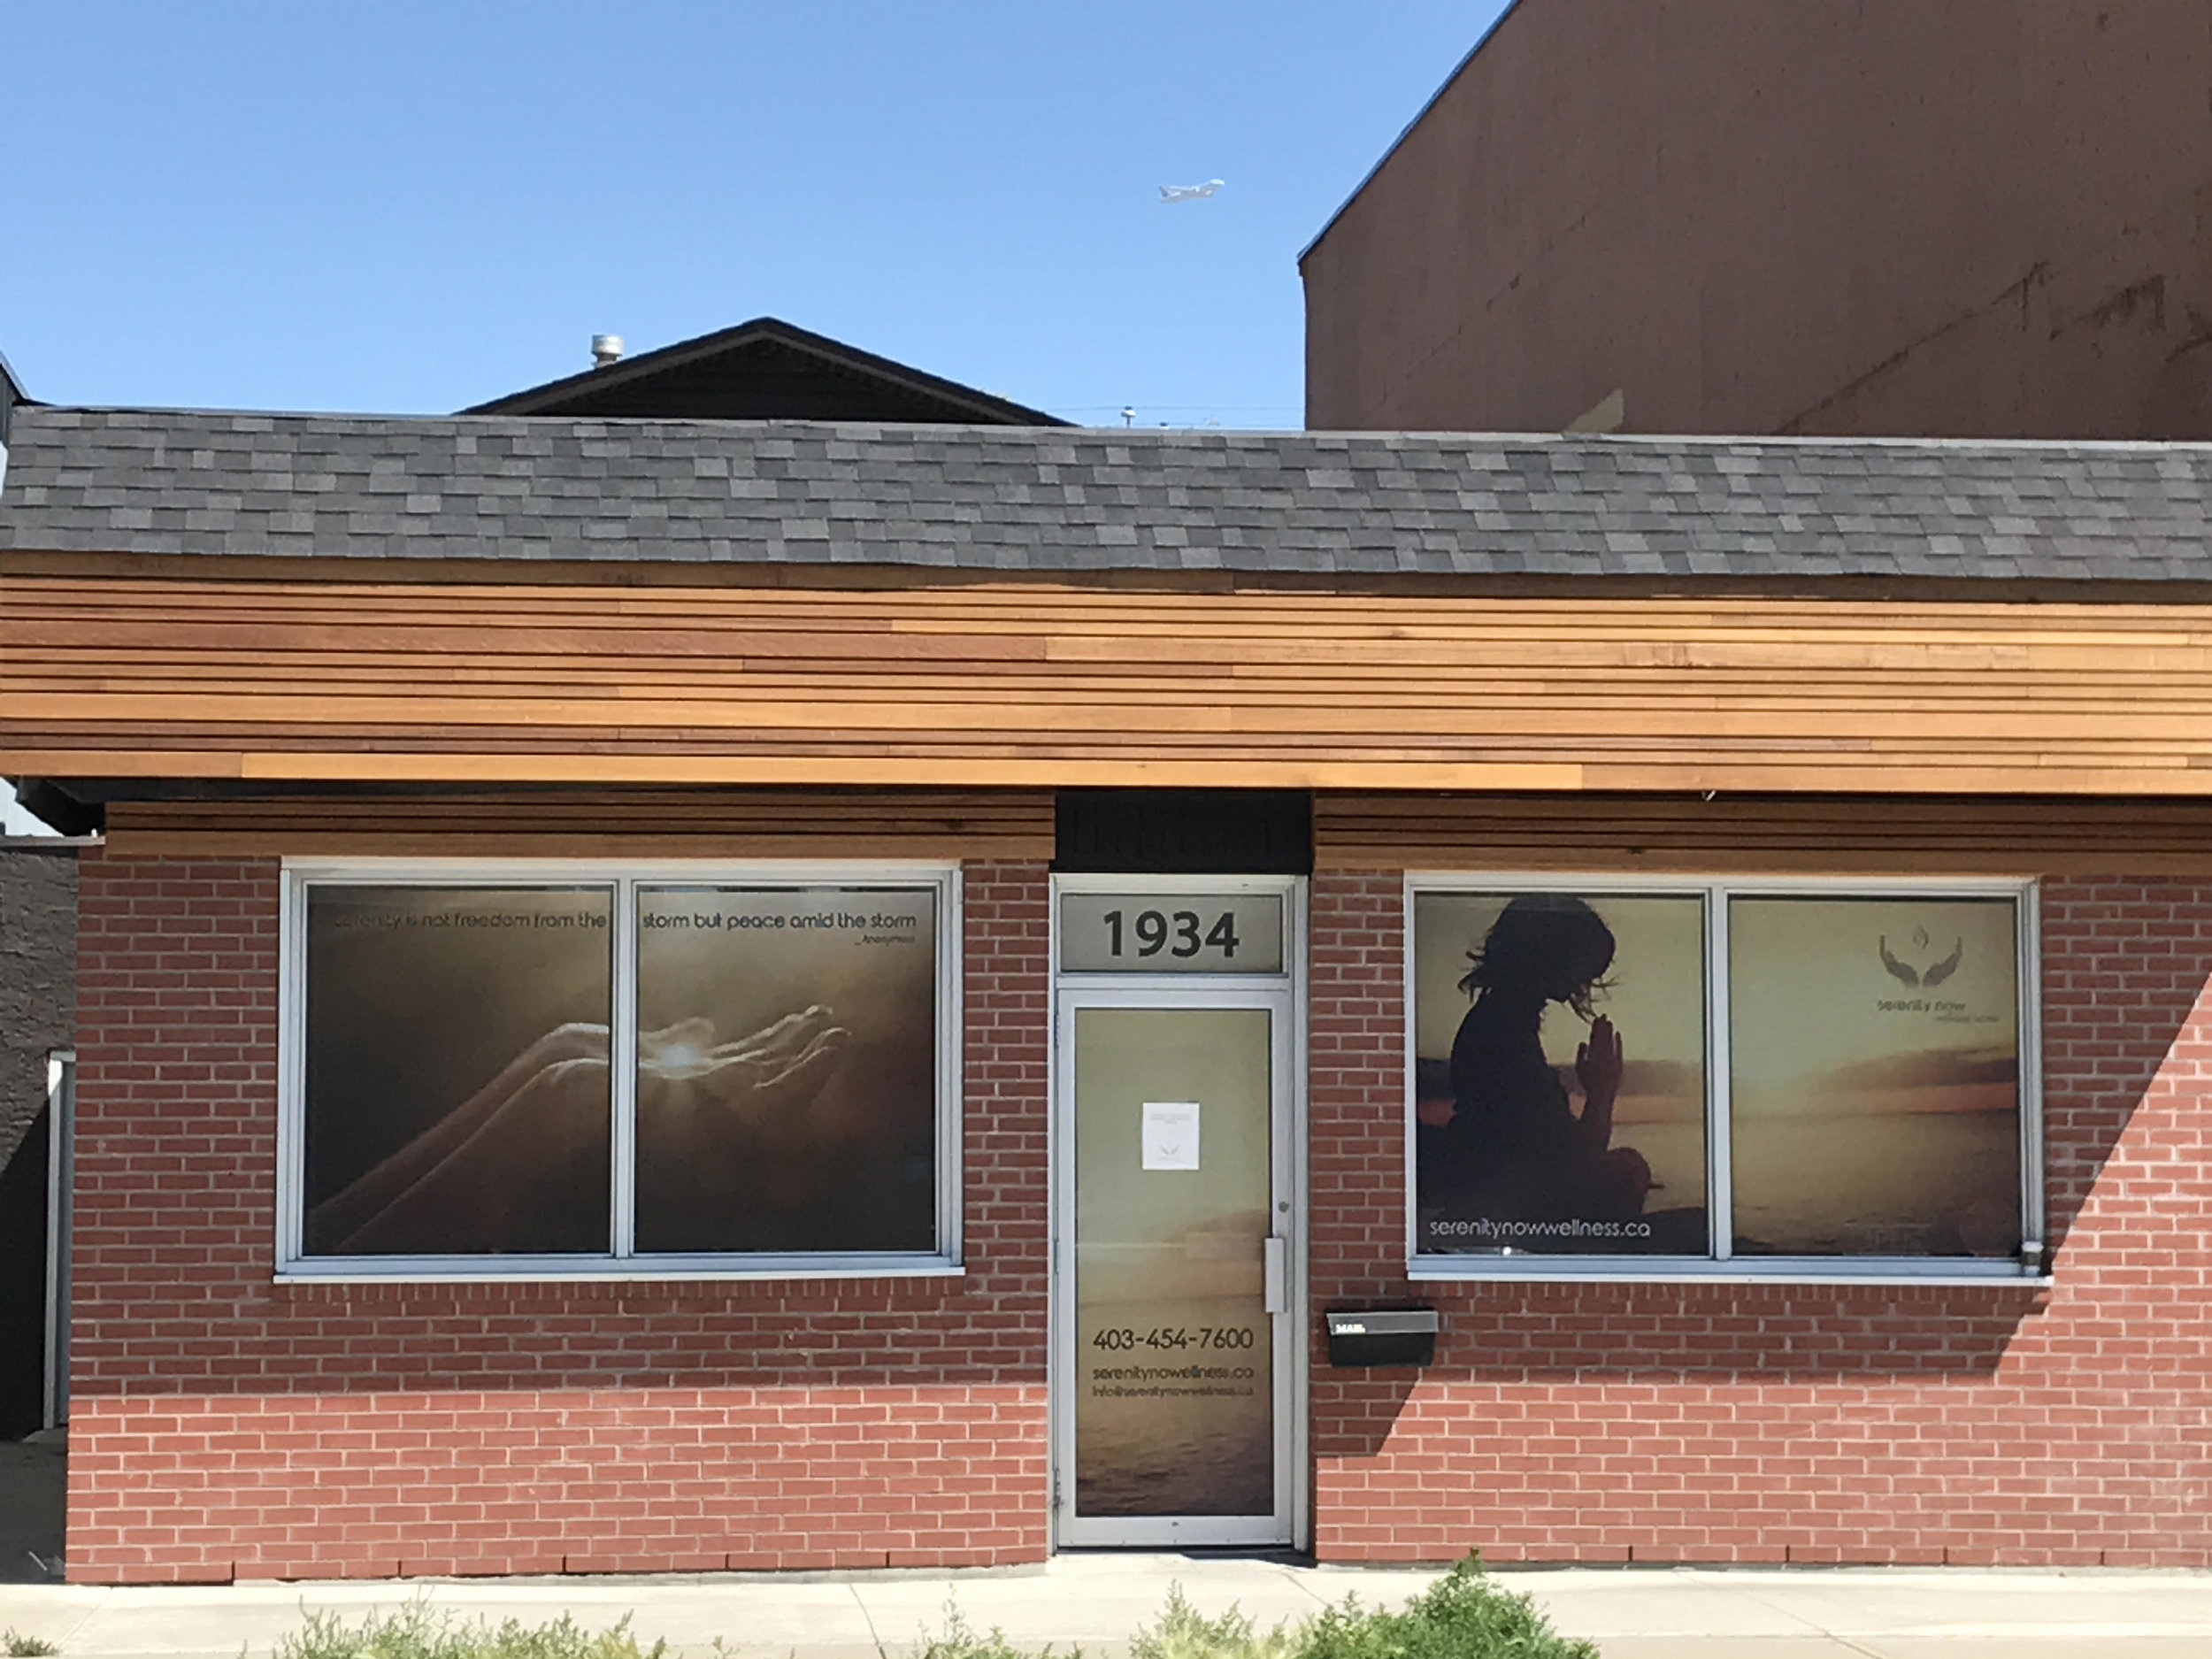 The new Serenity Now Wellness Center is located at 1934 9 Ave SE in Calgary, AB.